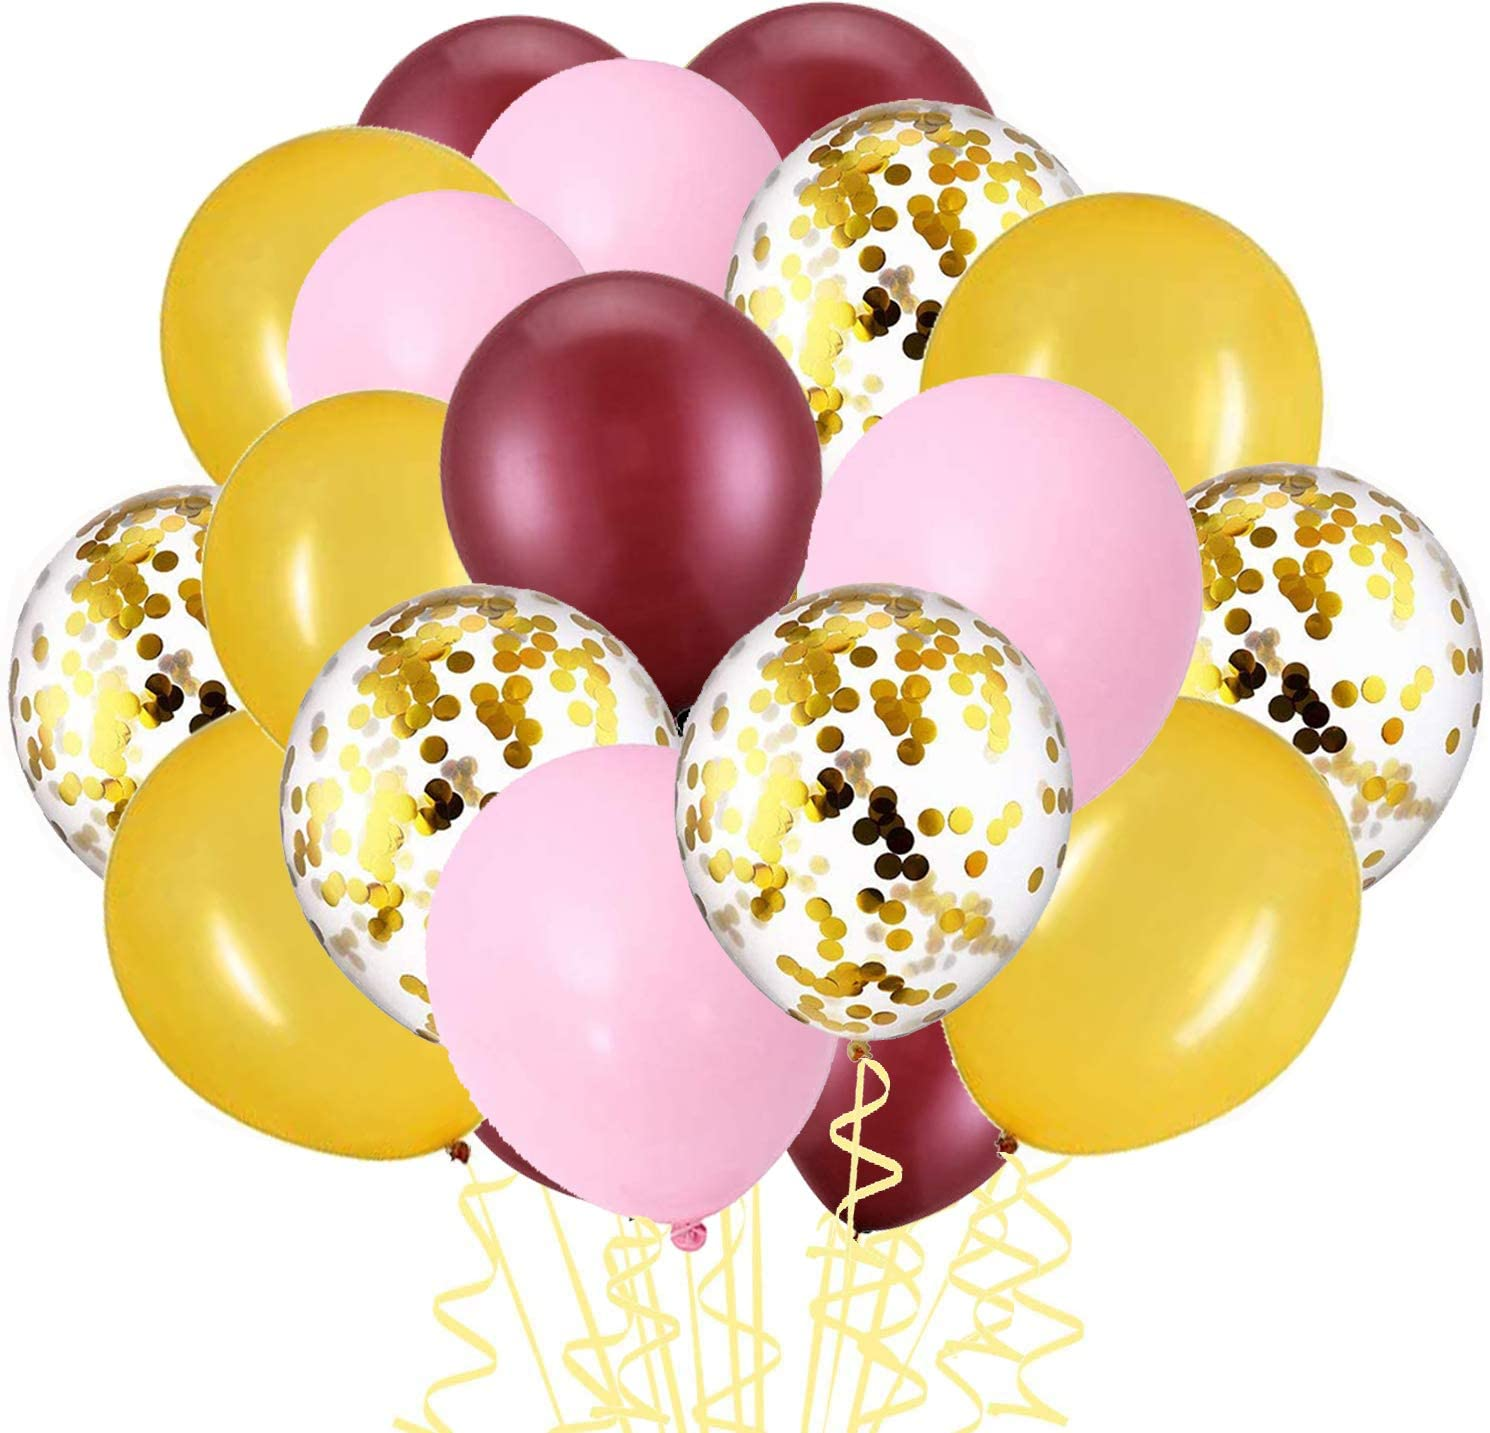 Kubert Burgundy Balloons Pink Gold Confetti Balloons 60 pcs Burgundy and Gold Birthday Party Decorations Burgundy Wedding Decor Wine Red Baby Shower Burgundy Gold Birthday Party Decorations for Women Burgundy Gold Fall Burgundy Birthday Party Supplies/30th/40th/50th Birthday Decorations Autumn